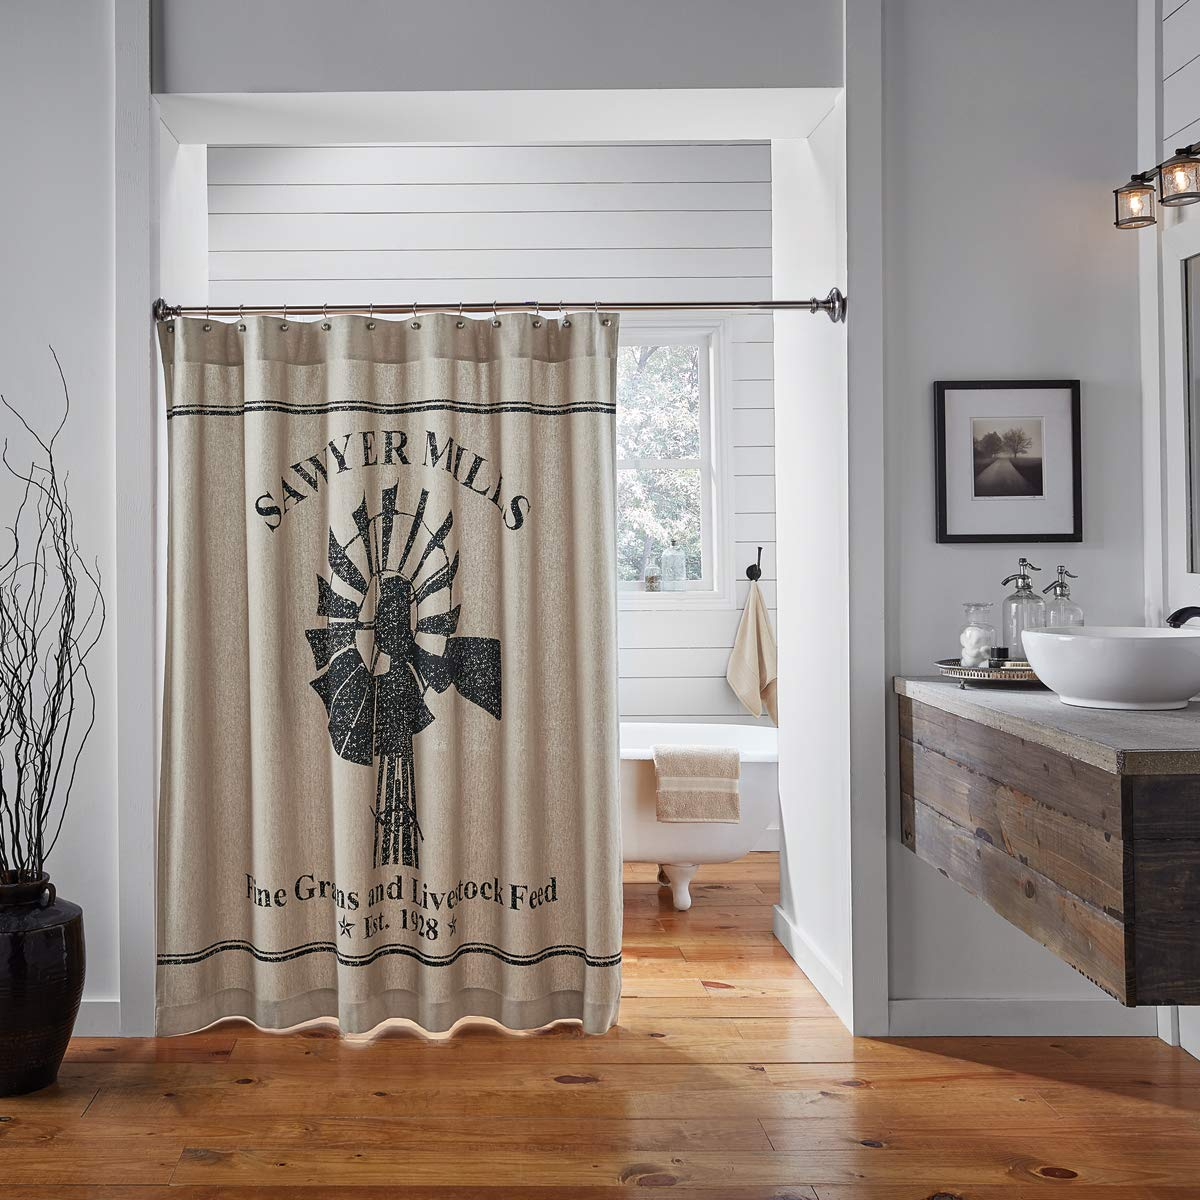 """Ashton & Willow Farmhouse Bath - Sawyer Mill Tan Farmhouse Shower Curtain, 72 x 72, Charcoal Windmill   ✯ Premium Material ✯ 100% Cotton Imported Windmill-themed black stencil in center on khaki chambray base A single grain sack stripe stenciled both above and below center motif Neat and durable hem fold Features 1.5"""" header with 1"""" button holes and 3"""" rod pocket Single fabric: Machine stitched   America's Premier Home Textile Destination  VHC Brands is a family owned business located in Branson, Missouri, but with roots in the Deep South. Founders Nancy and Billy Kline started the company as a small store in the 80's in Northwest Louisiana and grew the business to become the household name it is today through their high-quality, hand quilted, patchwork quilts.  Since the 80's, VHC Brands has experienced a move across states, overseas expansion, and the creation of many popular brands such as Lasting Impressions and Bella Taylor. After a devastating fire in October 2016, we relaunched with more vigor than ever with our April & Olive, Mayflower Market, Oak & Asher, and Season's Crest lifestyle brands – catering to farmhouse, rustic & lodge, primitive Americana, and holiday home décor styles, respectively.  Our designs and products are still rooted in classic style and crafted to bring years of enjoyment. A quilt is more than a way to cover a bed – it's a uniquely American way to decorate a room. We design every piece down to each fabric and thread color, with new products that embellish, update and maintain heritage ideas.  While we maintain a strong following in bedding, over the past two decades, VHC Brands has expanded its product offerings to include window treatment, rugs, kitchen textiles, and holiday/Christmas décor. VHC Brands is looking toward the future while continually focusing on quality, growth and an overall customer experience that has defined us since our inception. Oct.2019 Price:$32.95 Plus FREE Shipping"""